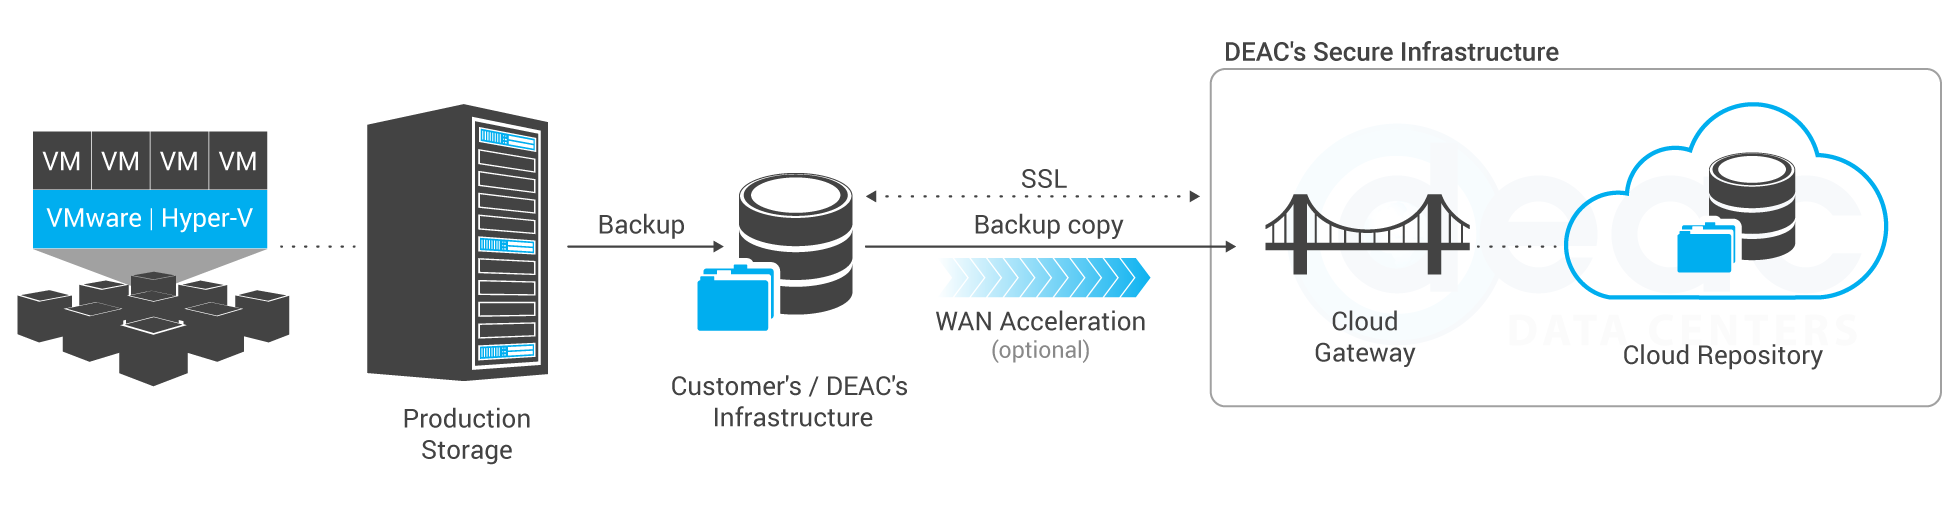 Veeam disaster recovery scheme DEAC